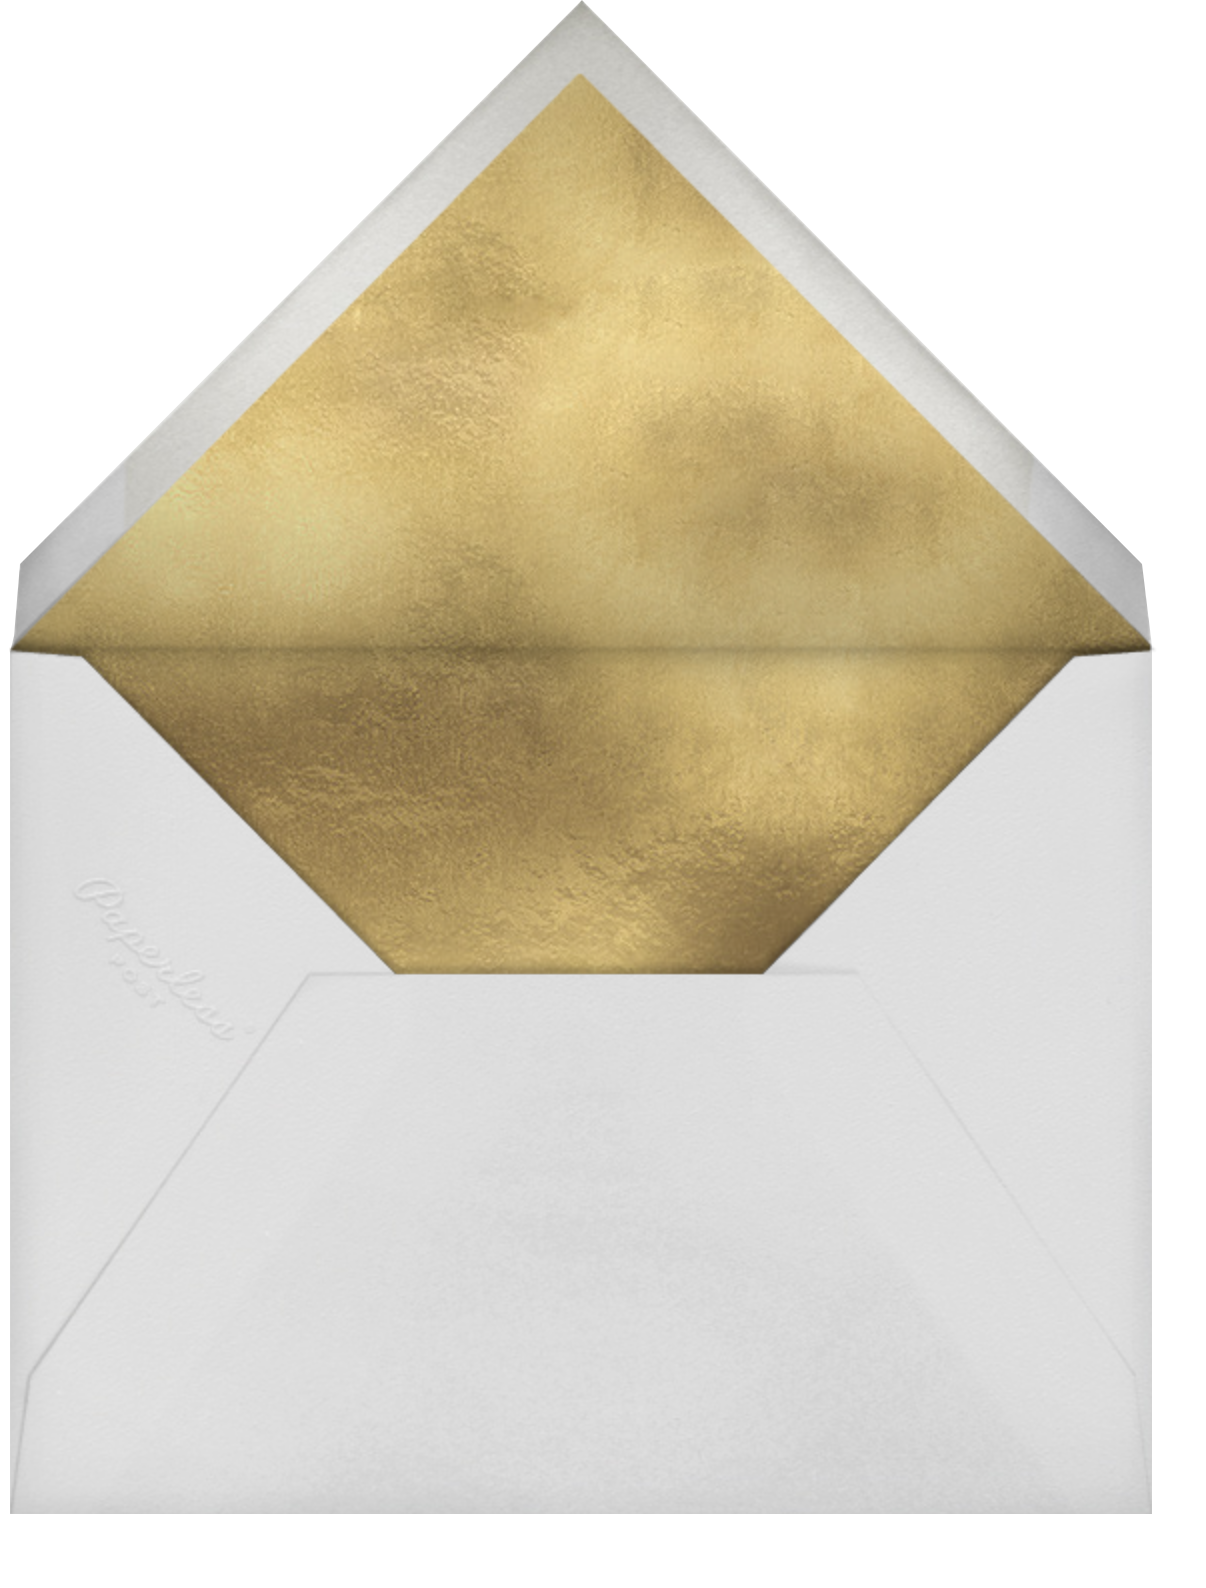 Golden Hearts - Gold - kate spade new york - Save the date - envelope back